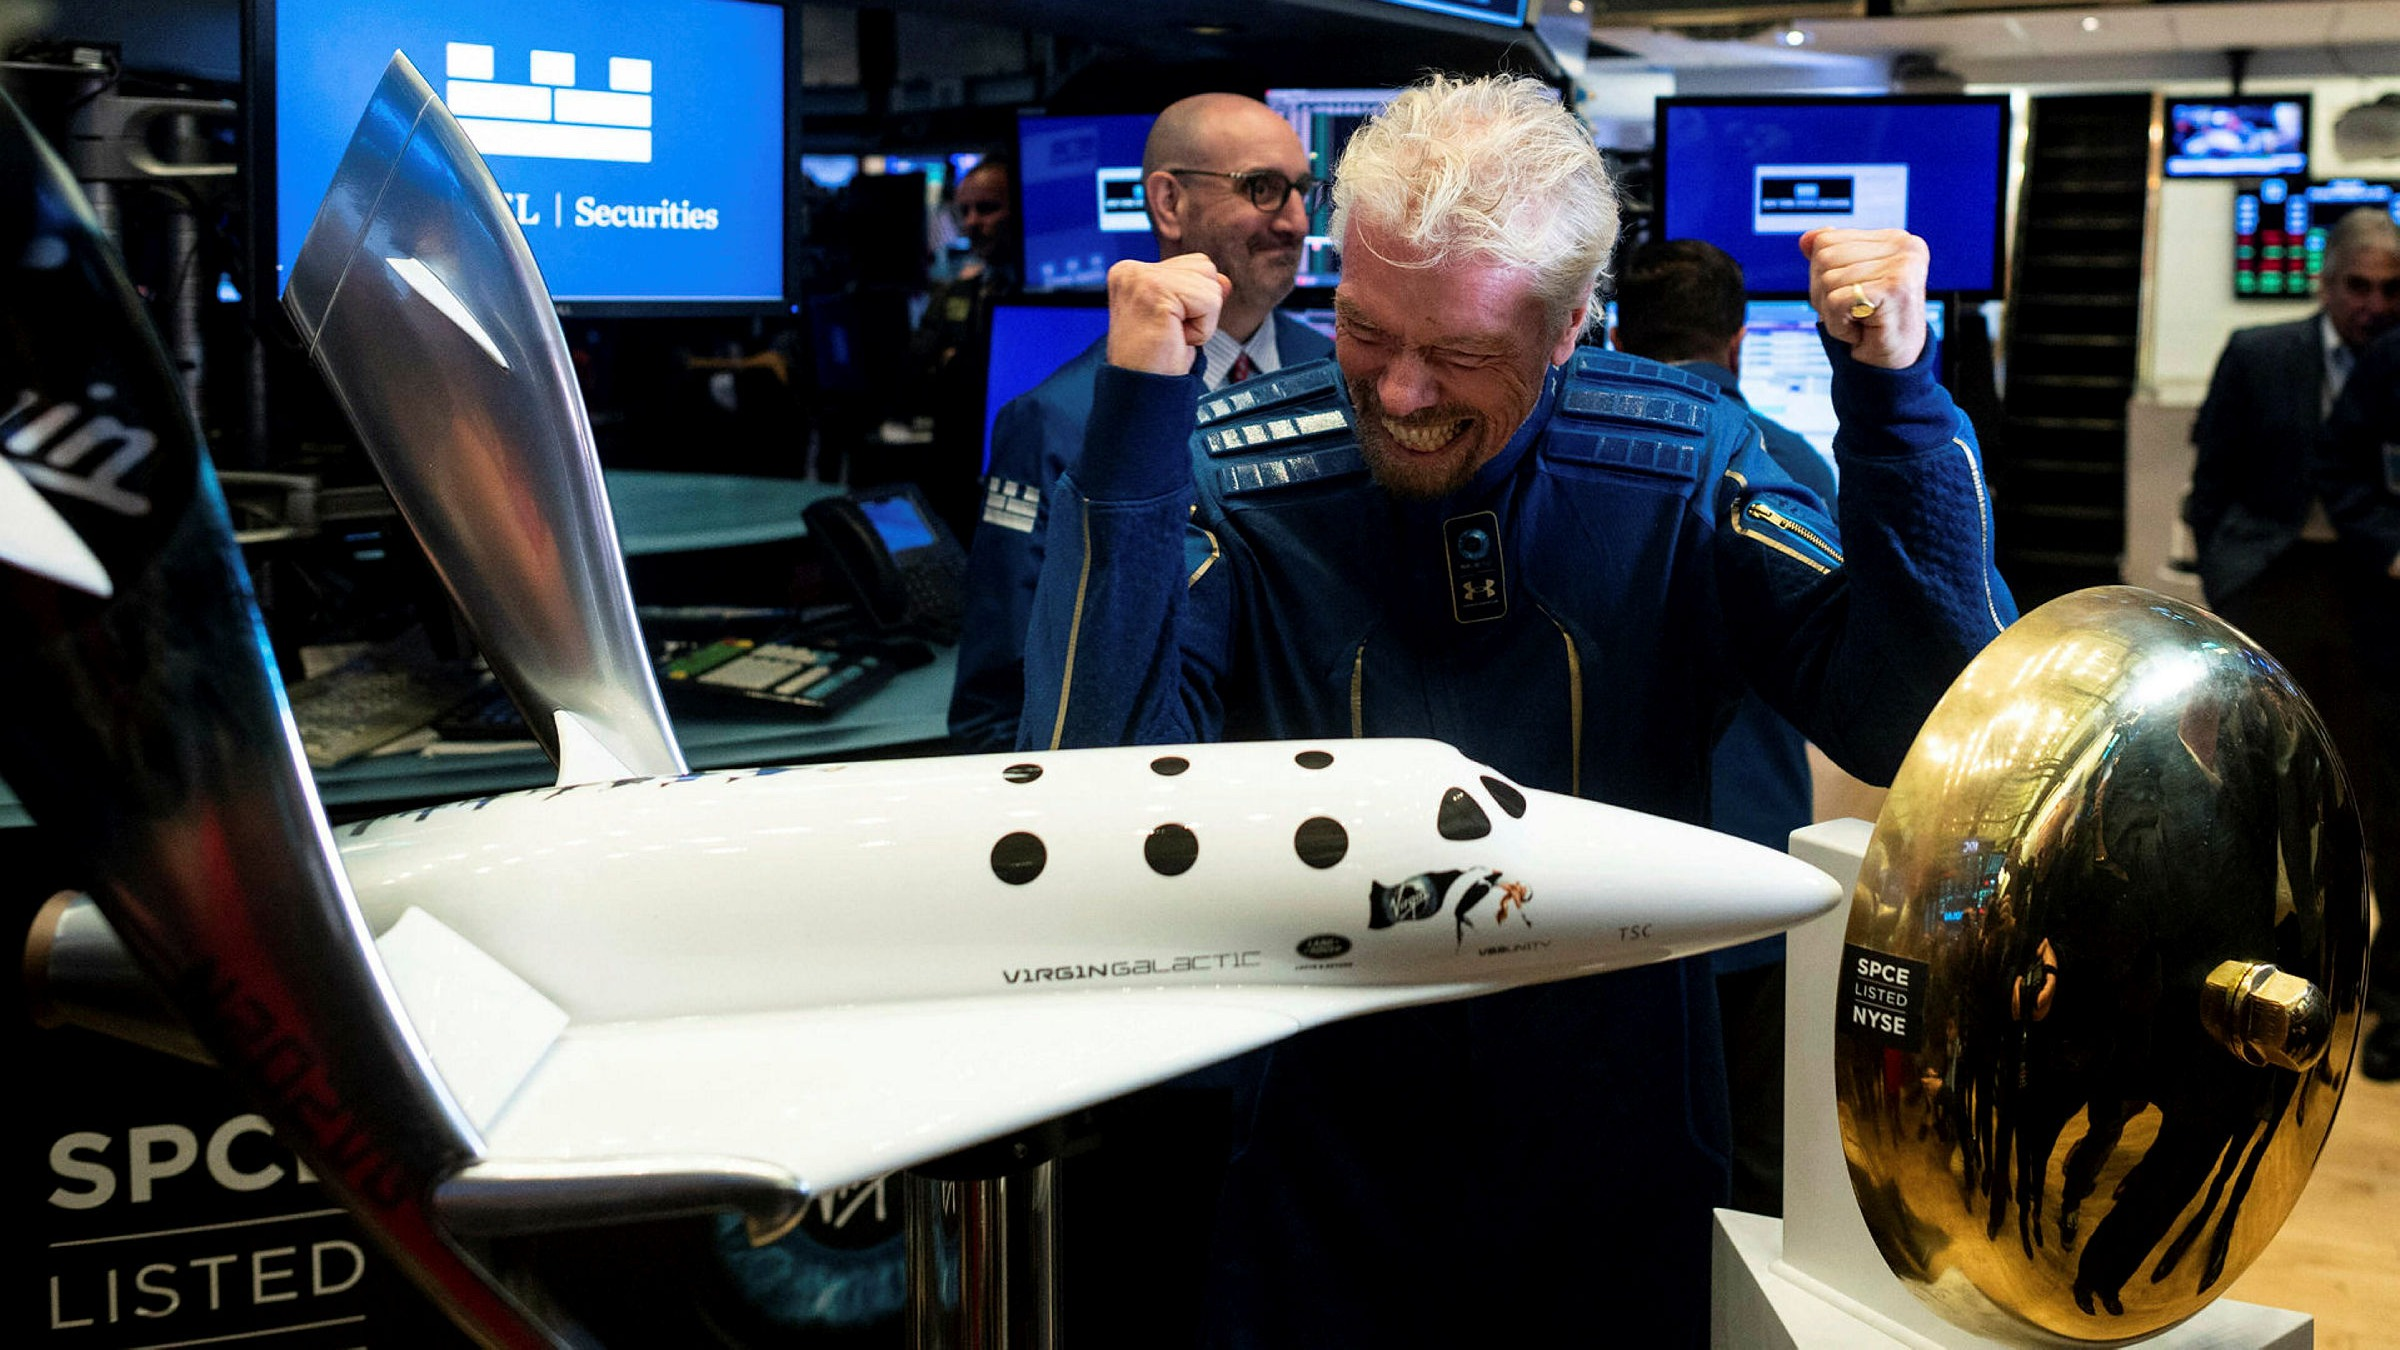 Richard Branson poised to beat Jeff Bezos into space | Financial Times